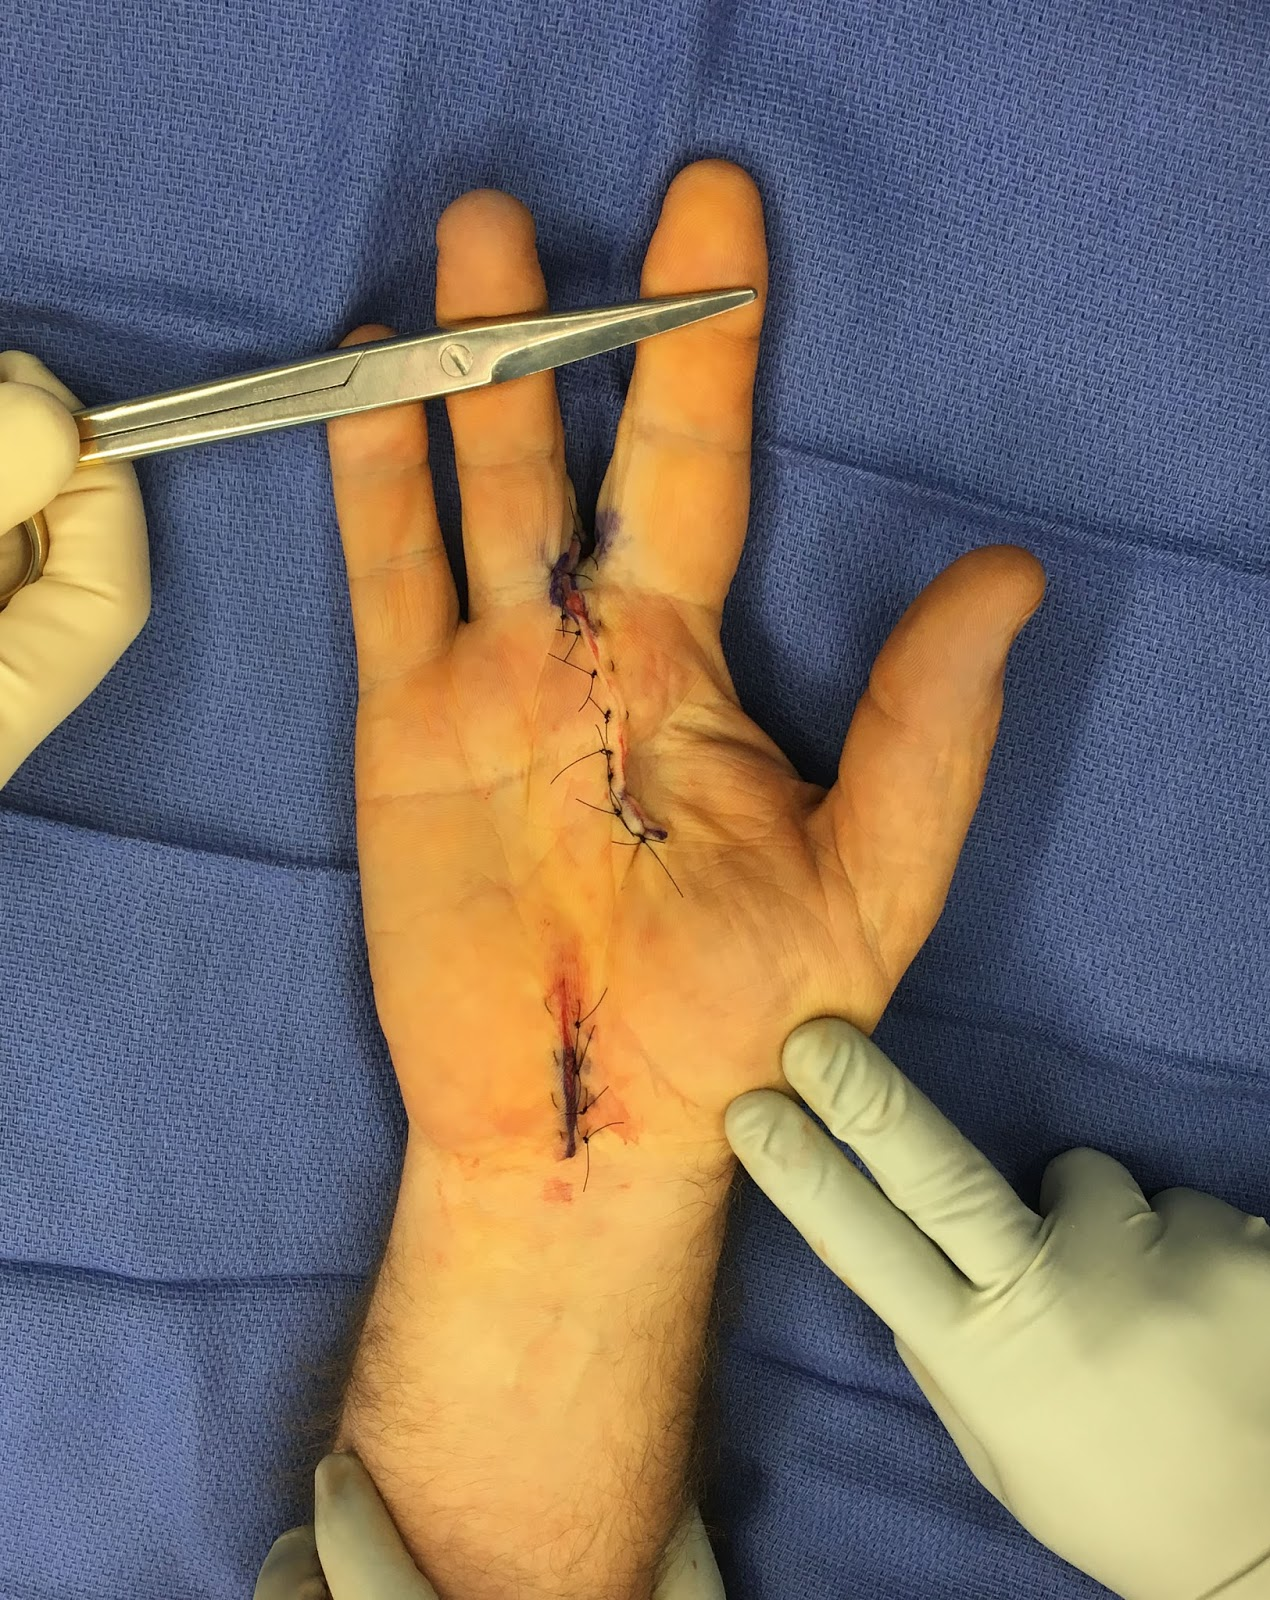 Congenital Hand and Arm Differences: Surgery for Macrodactyly